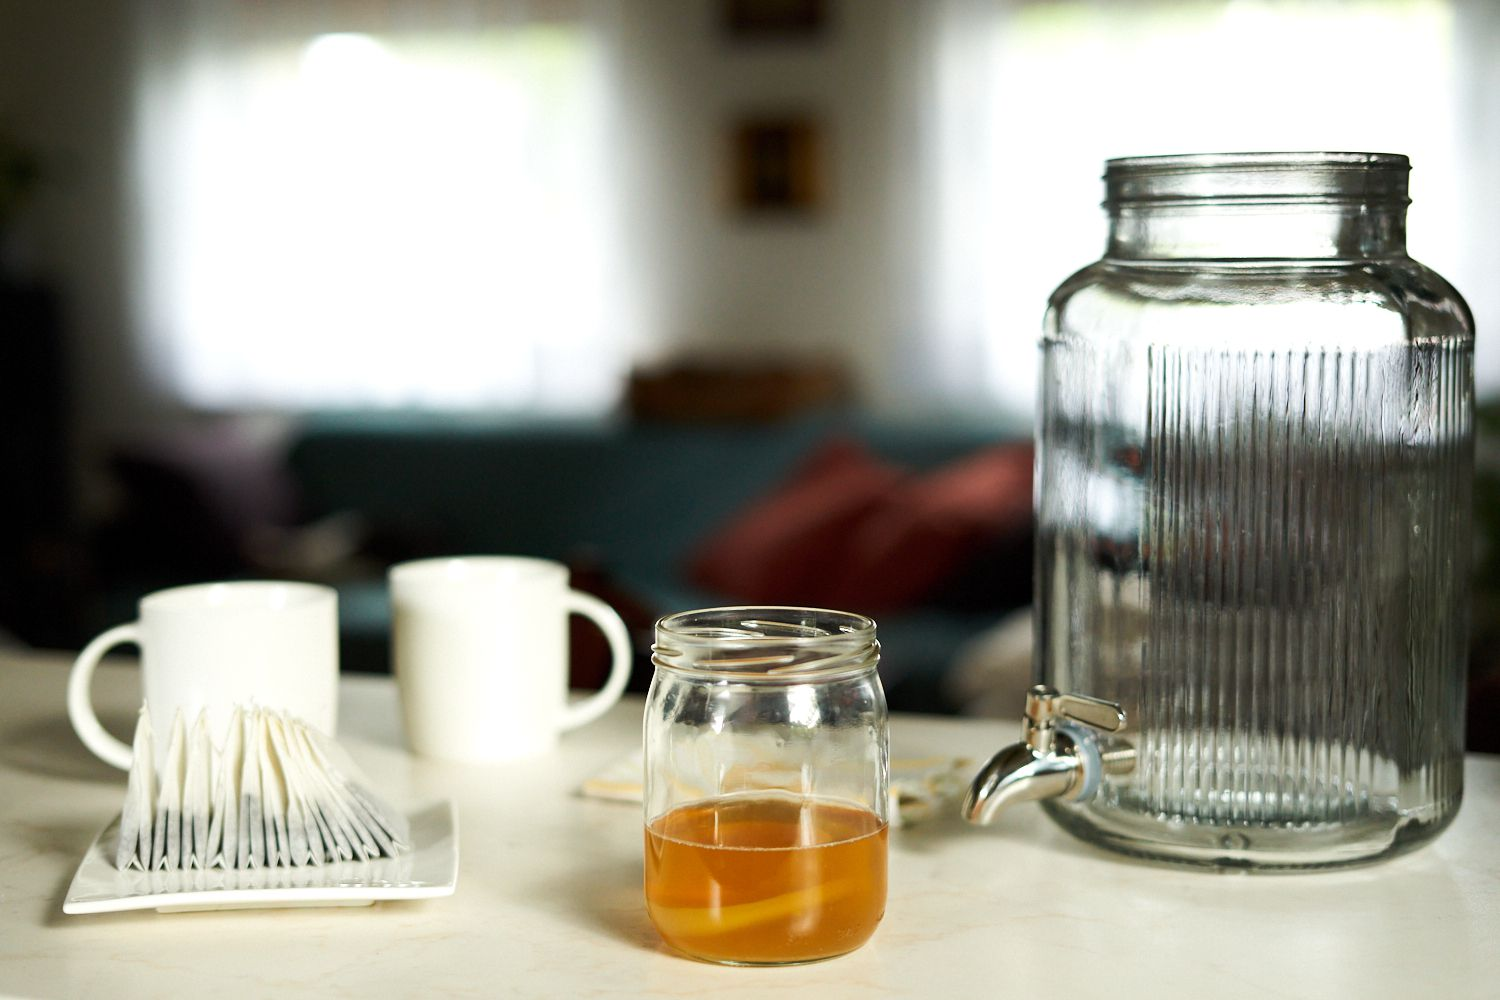 gallon-size glass container and kombucha-making supplies displayed in home